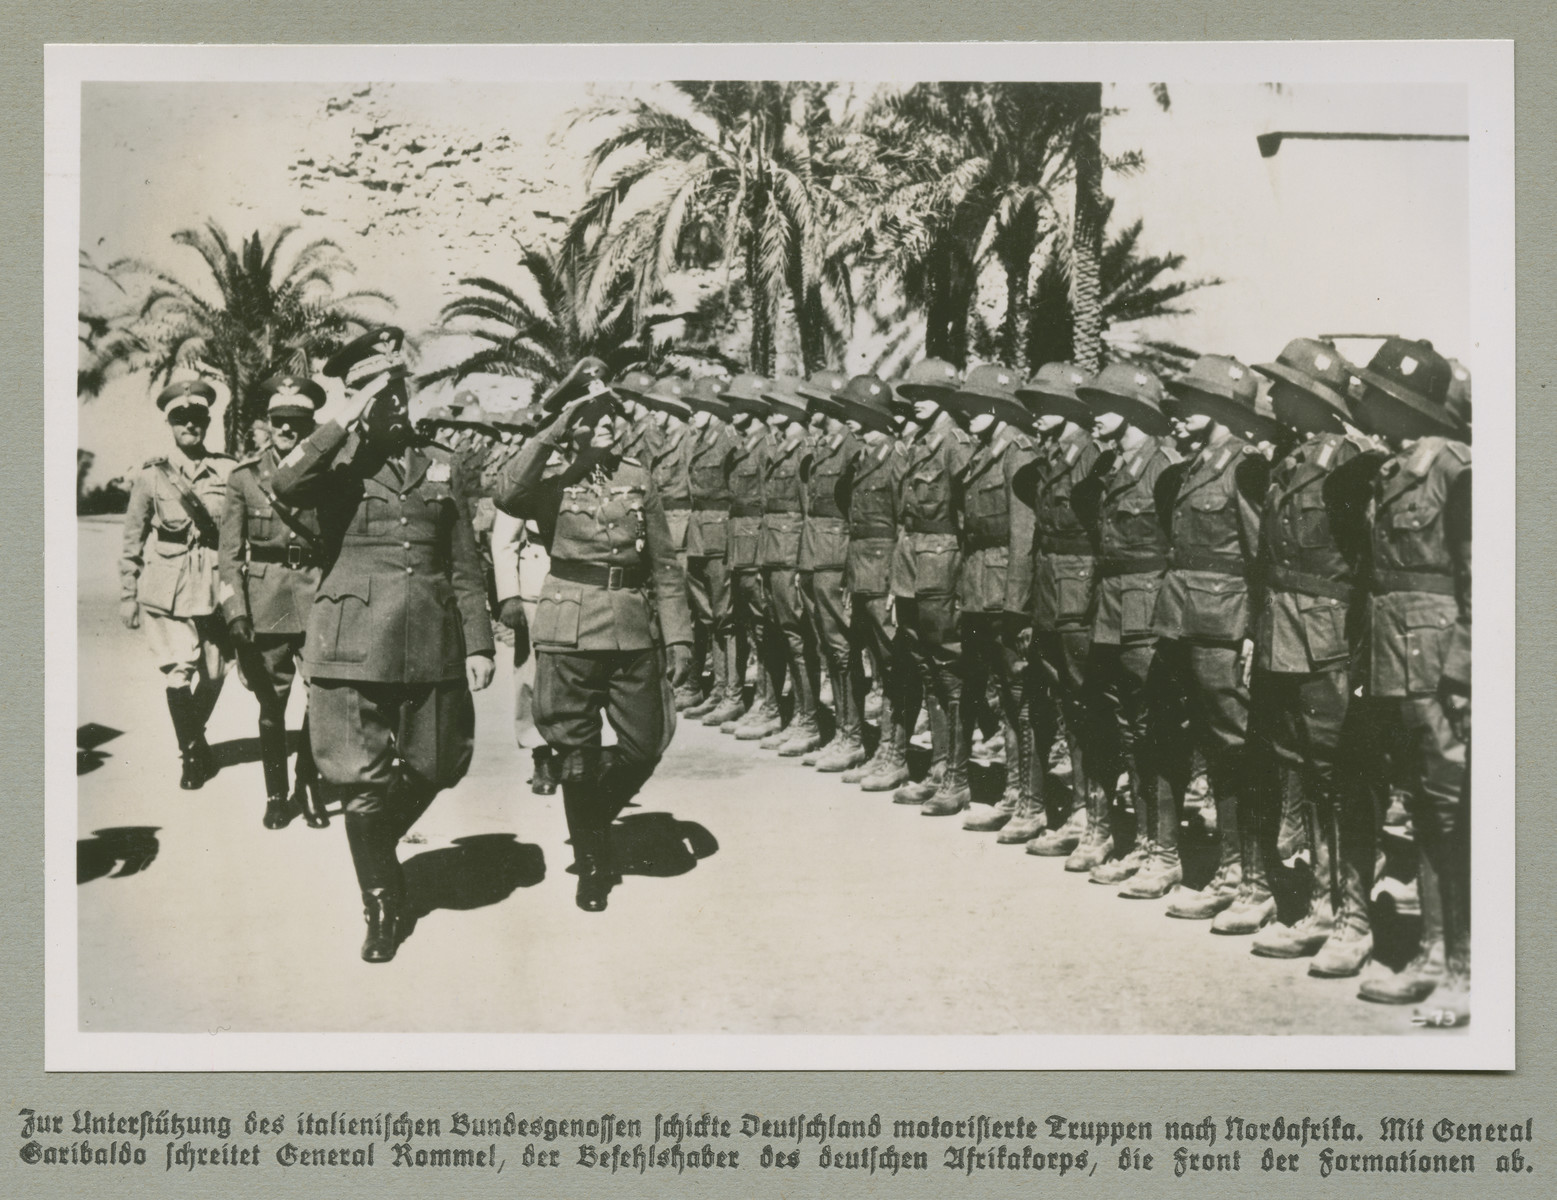 High ranking military personnel walk past and salute troops.  Original caption reads: Germany sent motorized troops to North Africa in support of its Italian allies. General Rommel, the commander of German troops in North Africa, walks with General Garibaldo astride the front line of the formation.